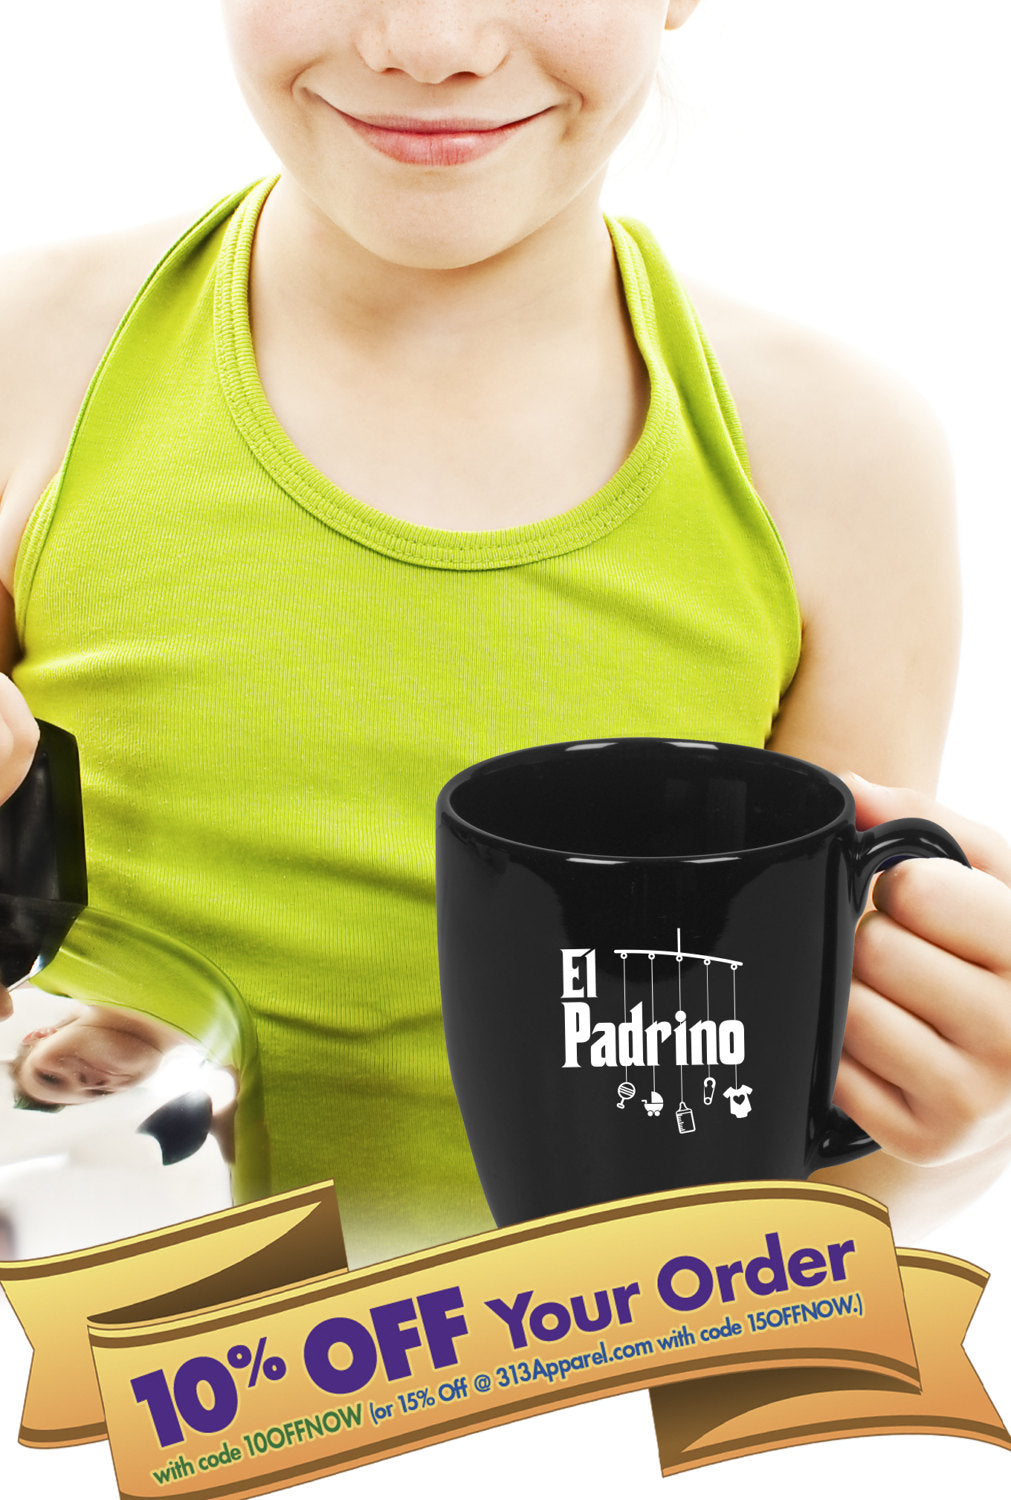 padrino (godfather) coffee mug   |   taza de café padrino   |   double-sided logo   |   14 ounce   |   micro & diswasher safe